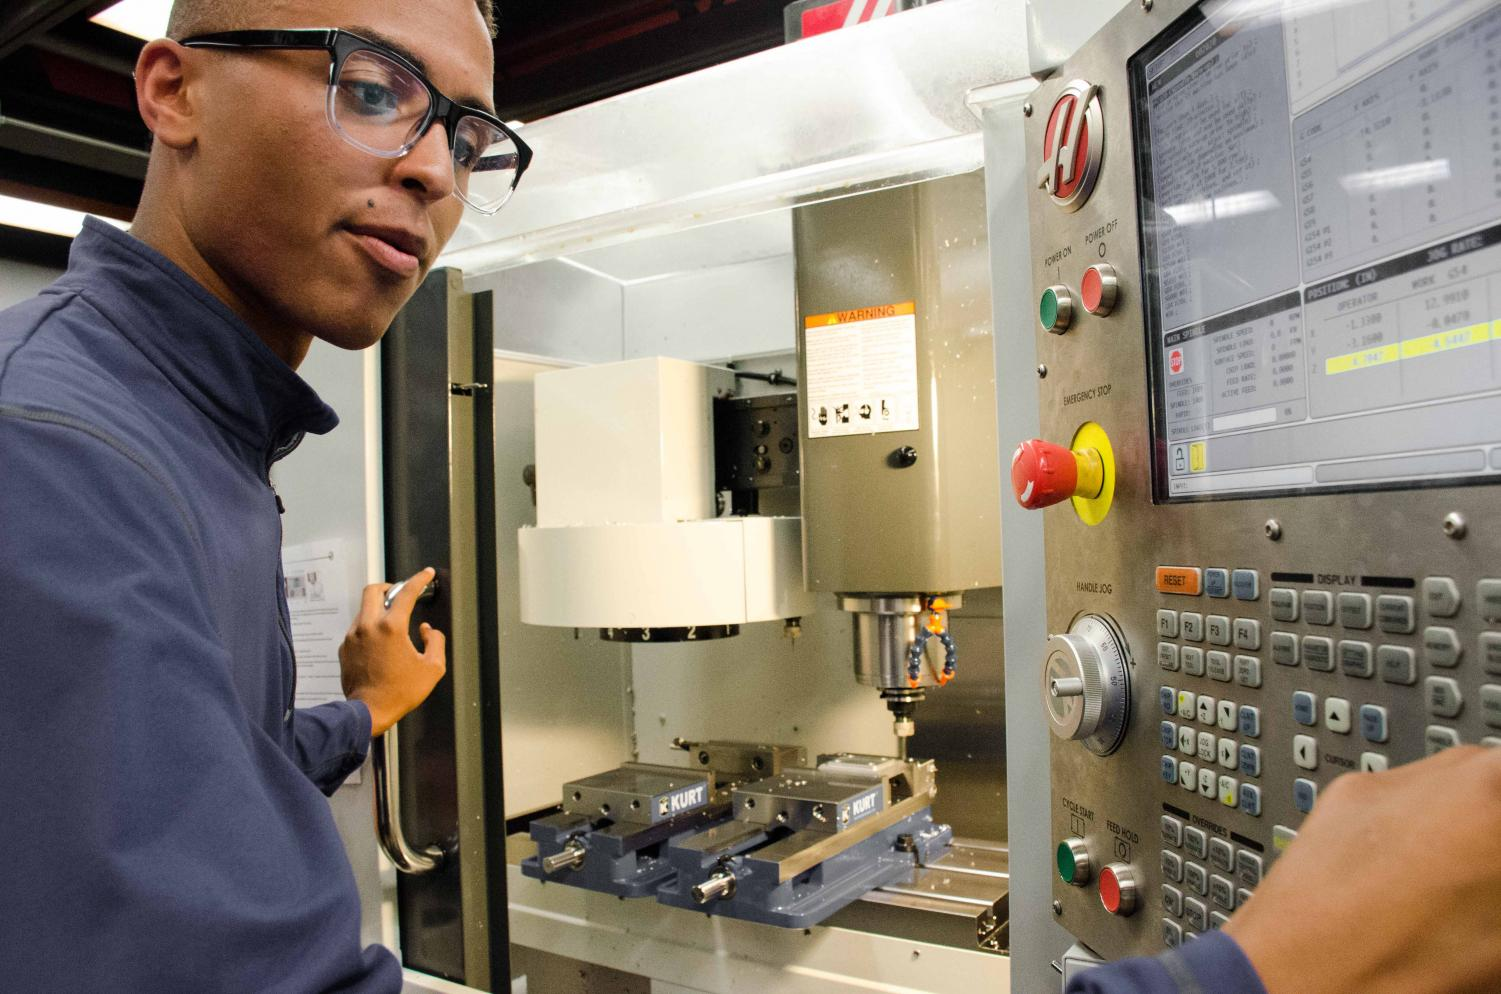 James Spencer works on an automated milling machine in the DVC machine shop on Tues, April 30th. As automated machines, like CNC ones, take over traditional manufacturing jobs, new jobs in programming and controlling them have arisen.